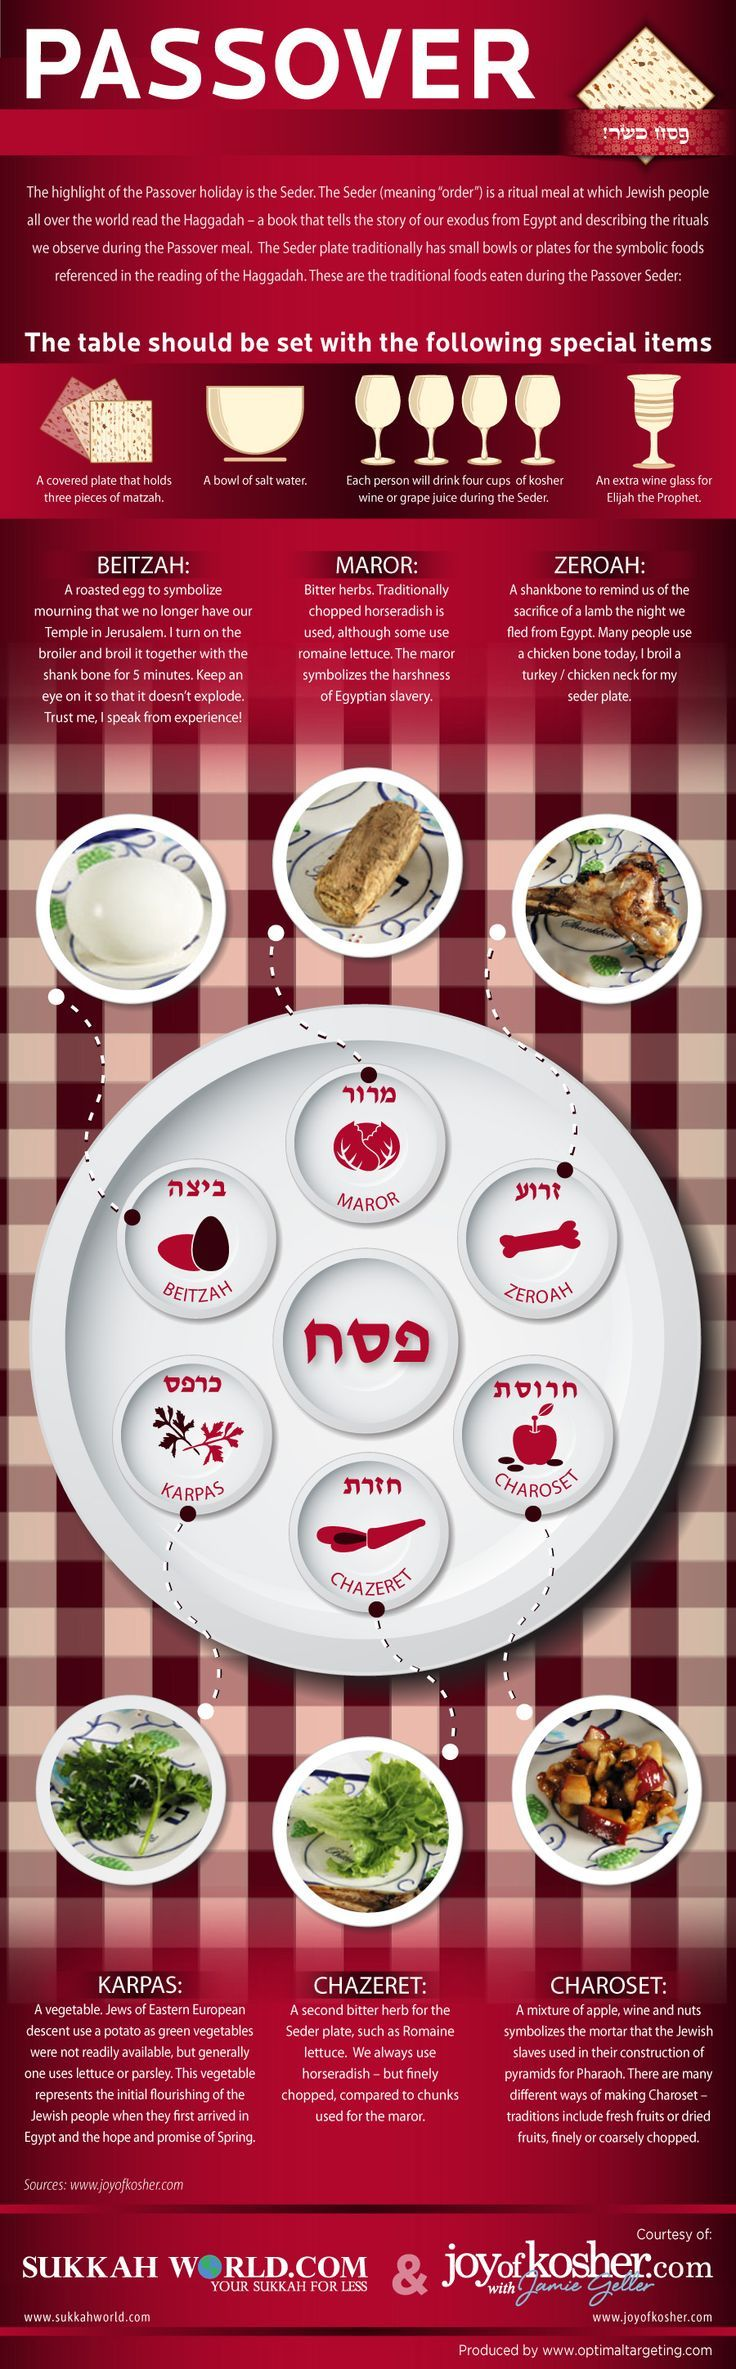 Passover - the Seder meal.  For vegetarians: Most commonly, a ripe beet is used in place of a shankbone at vegetarian seders.